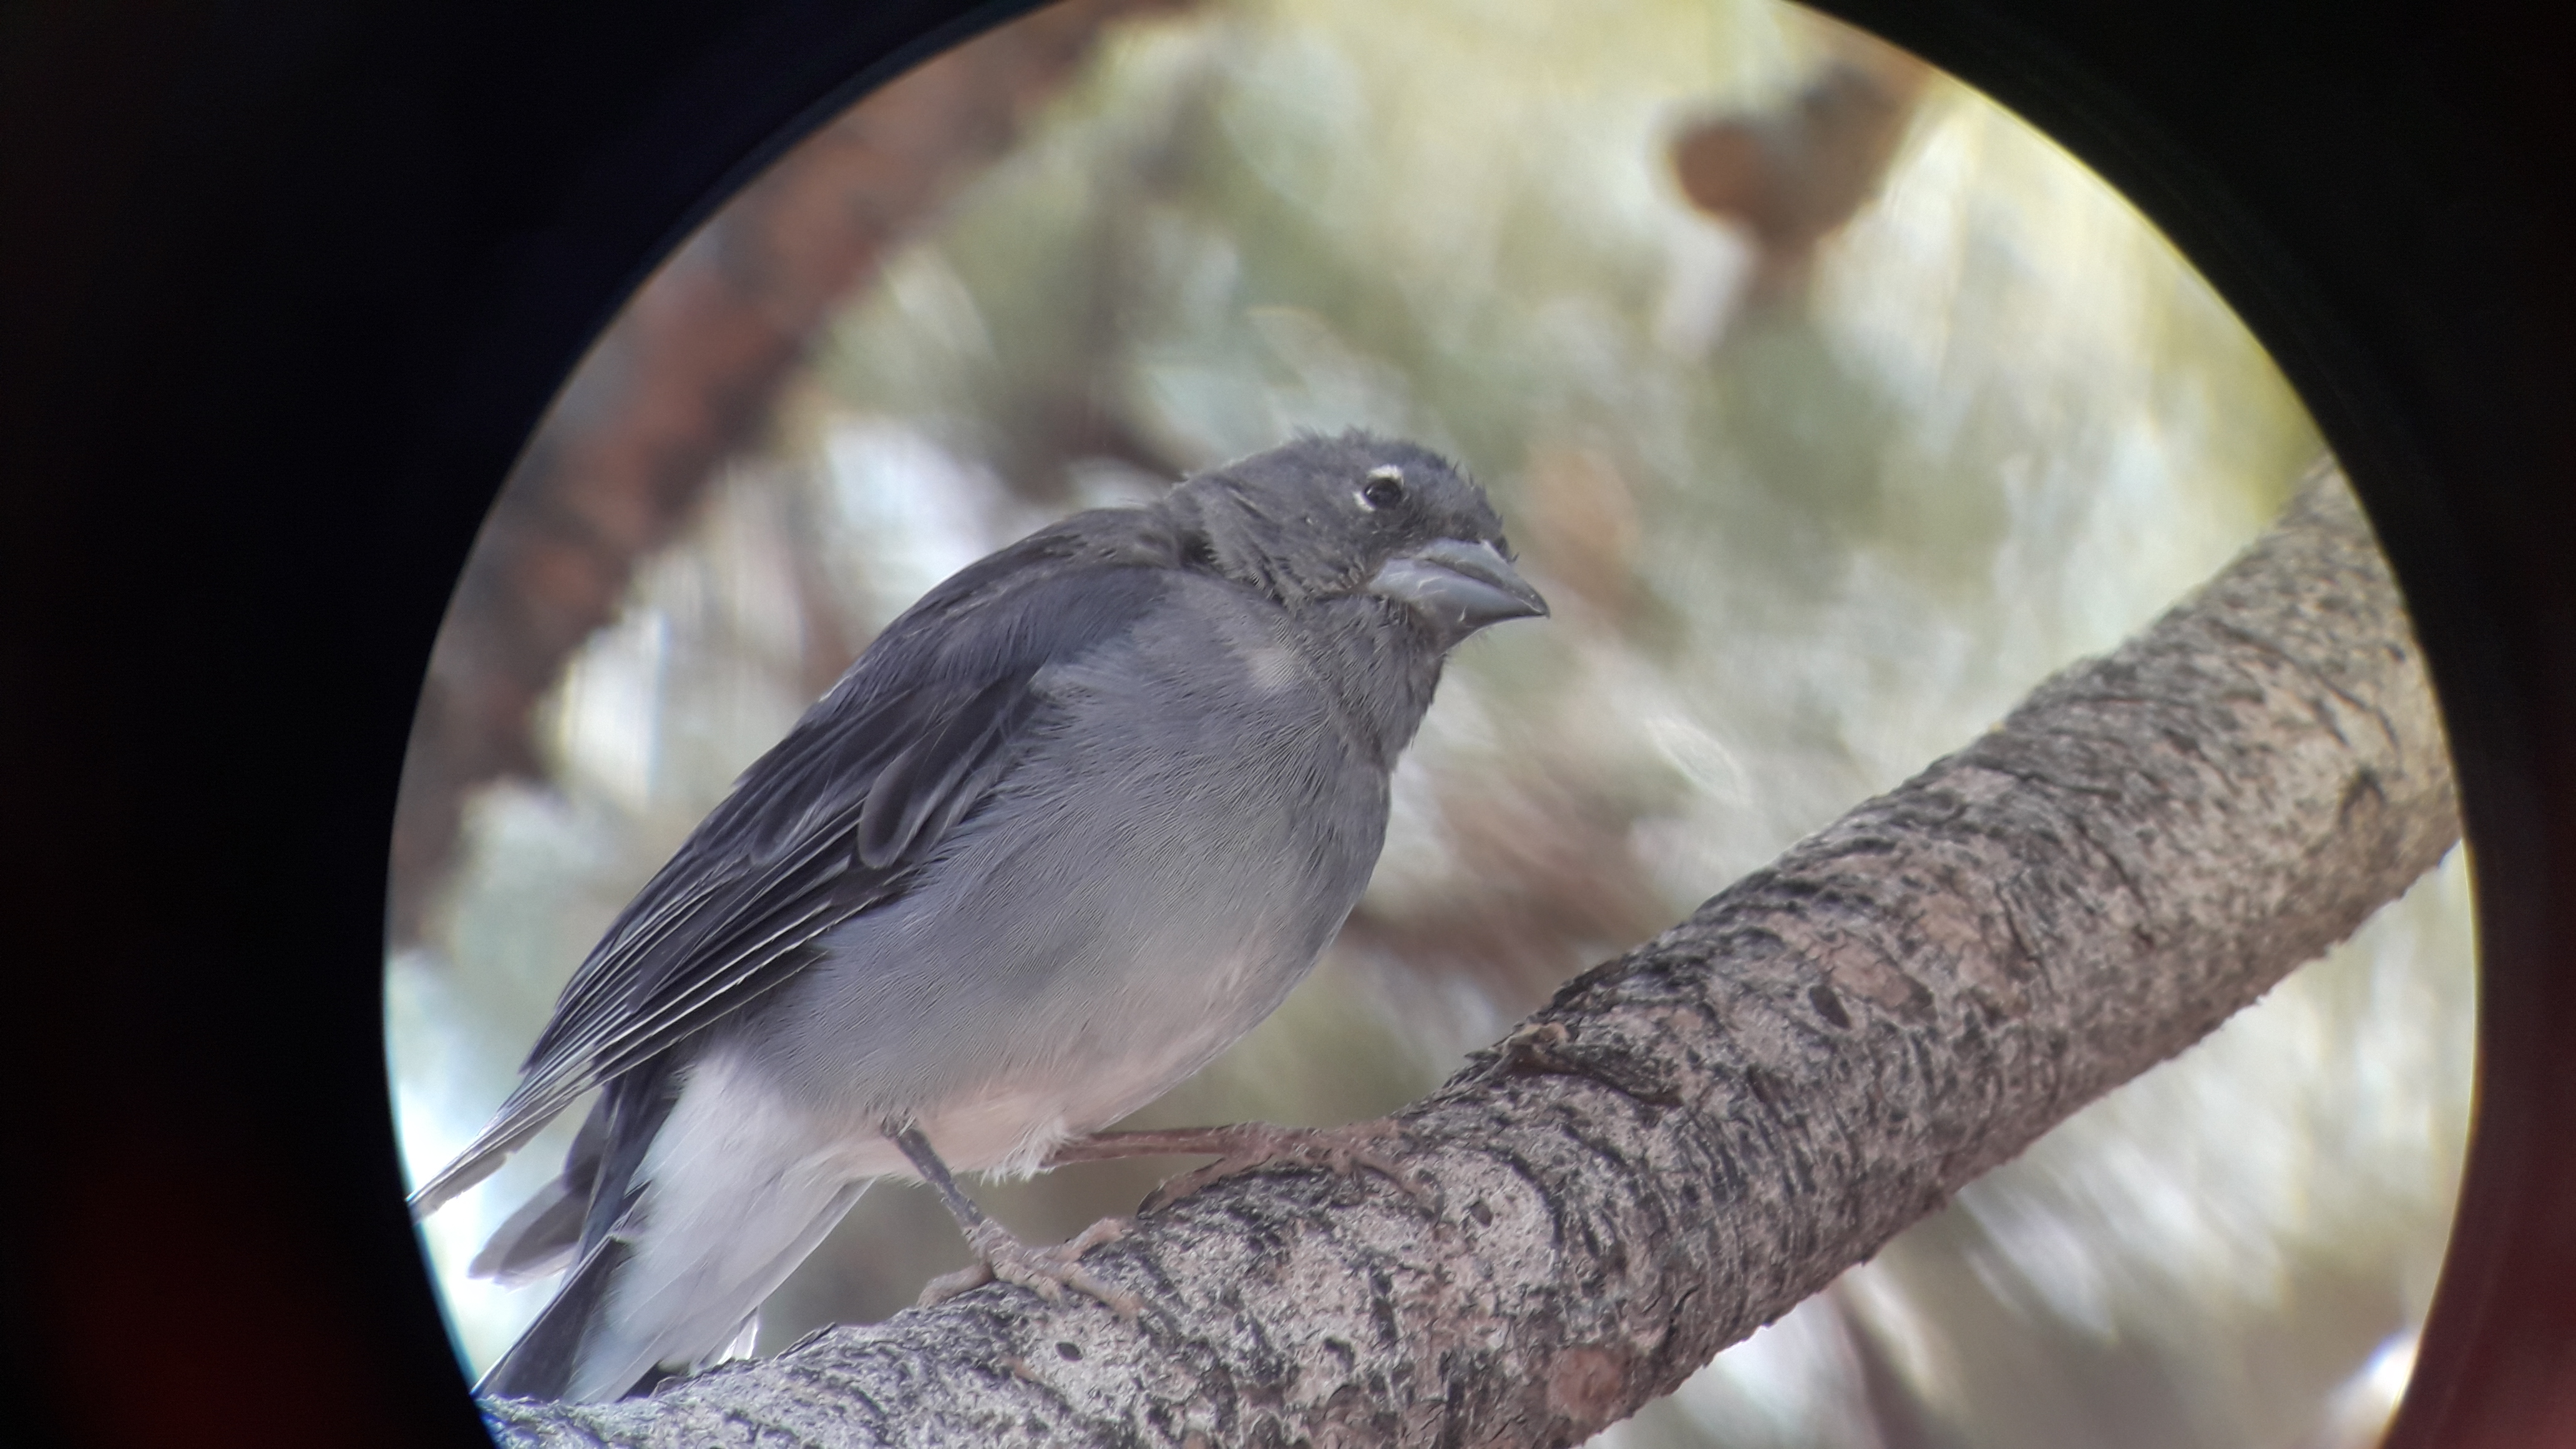 Blue chaffinch of Tenerife through a telescope